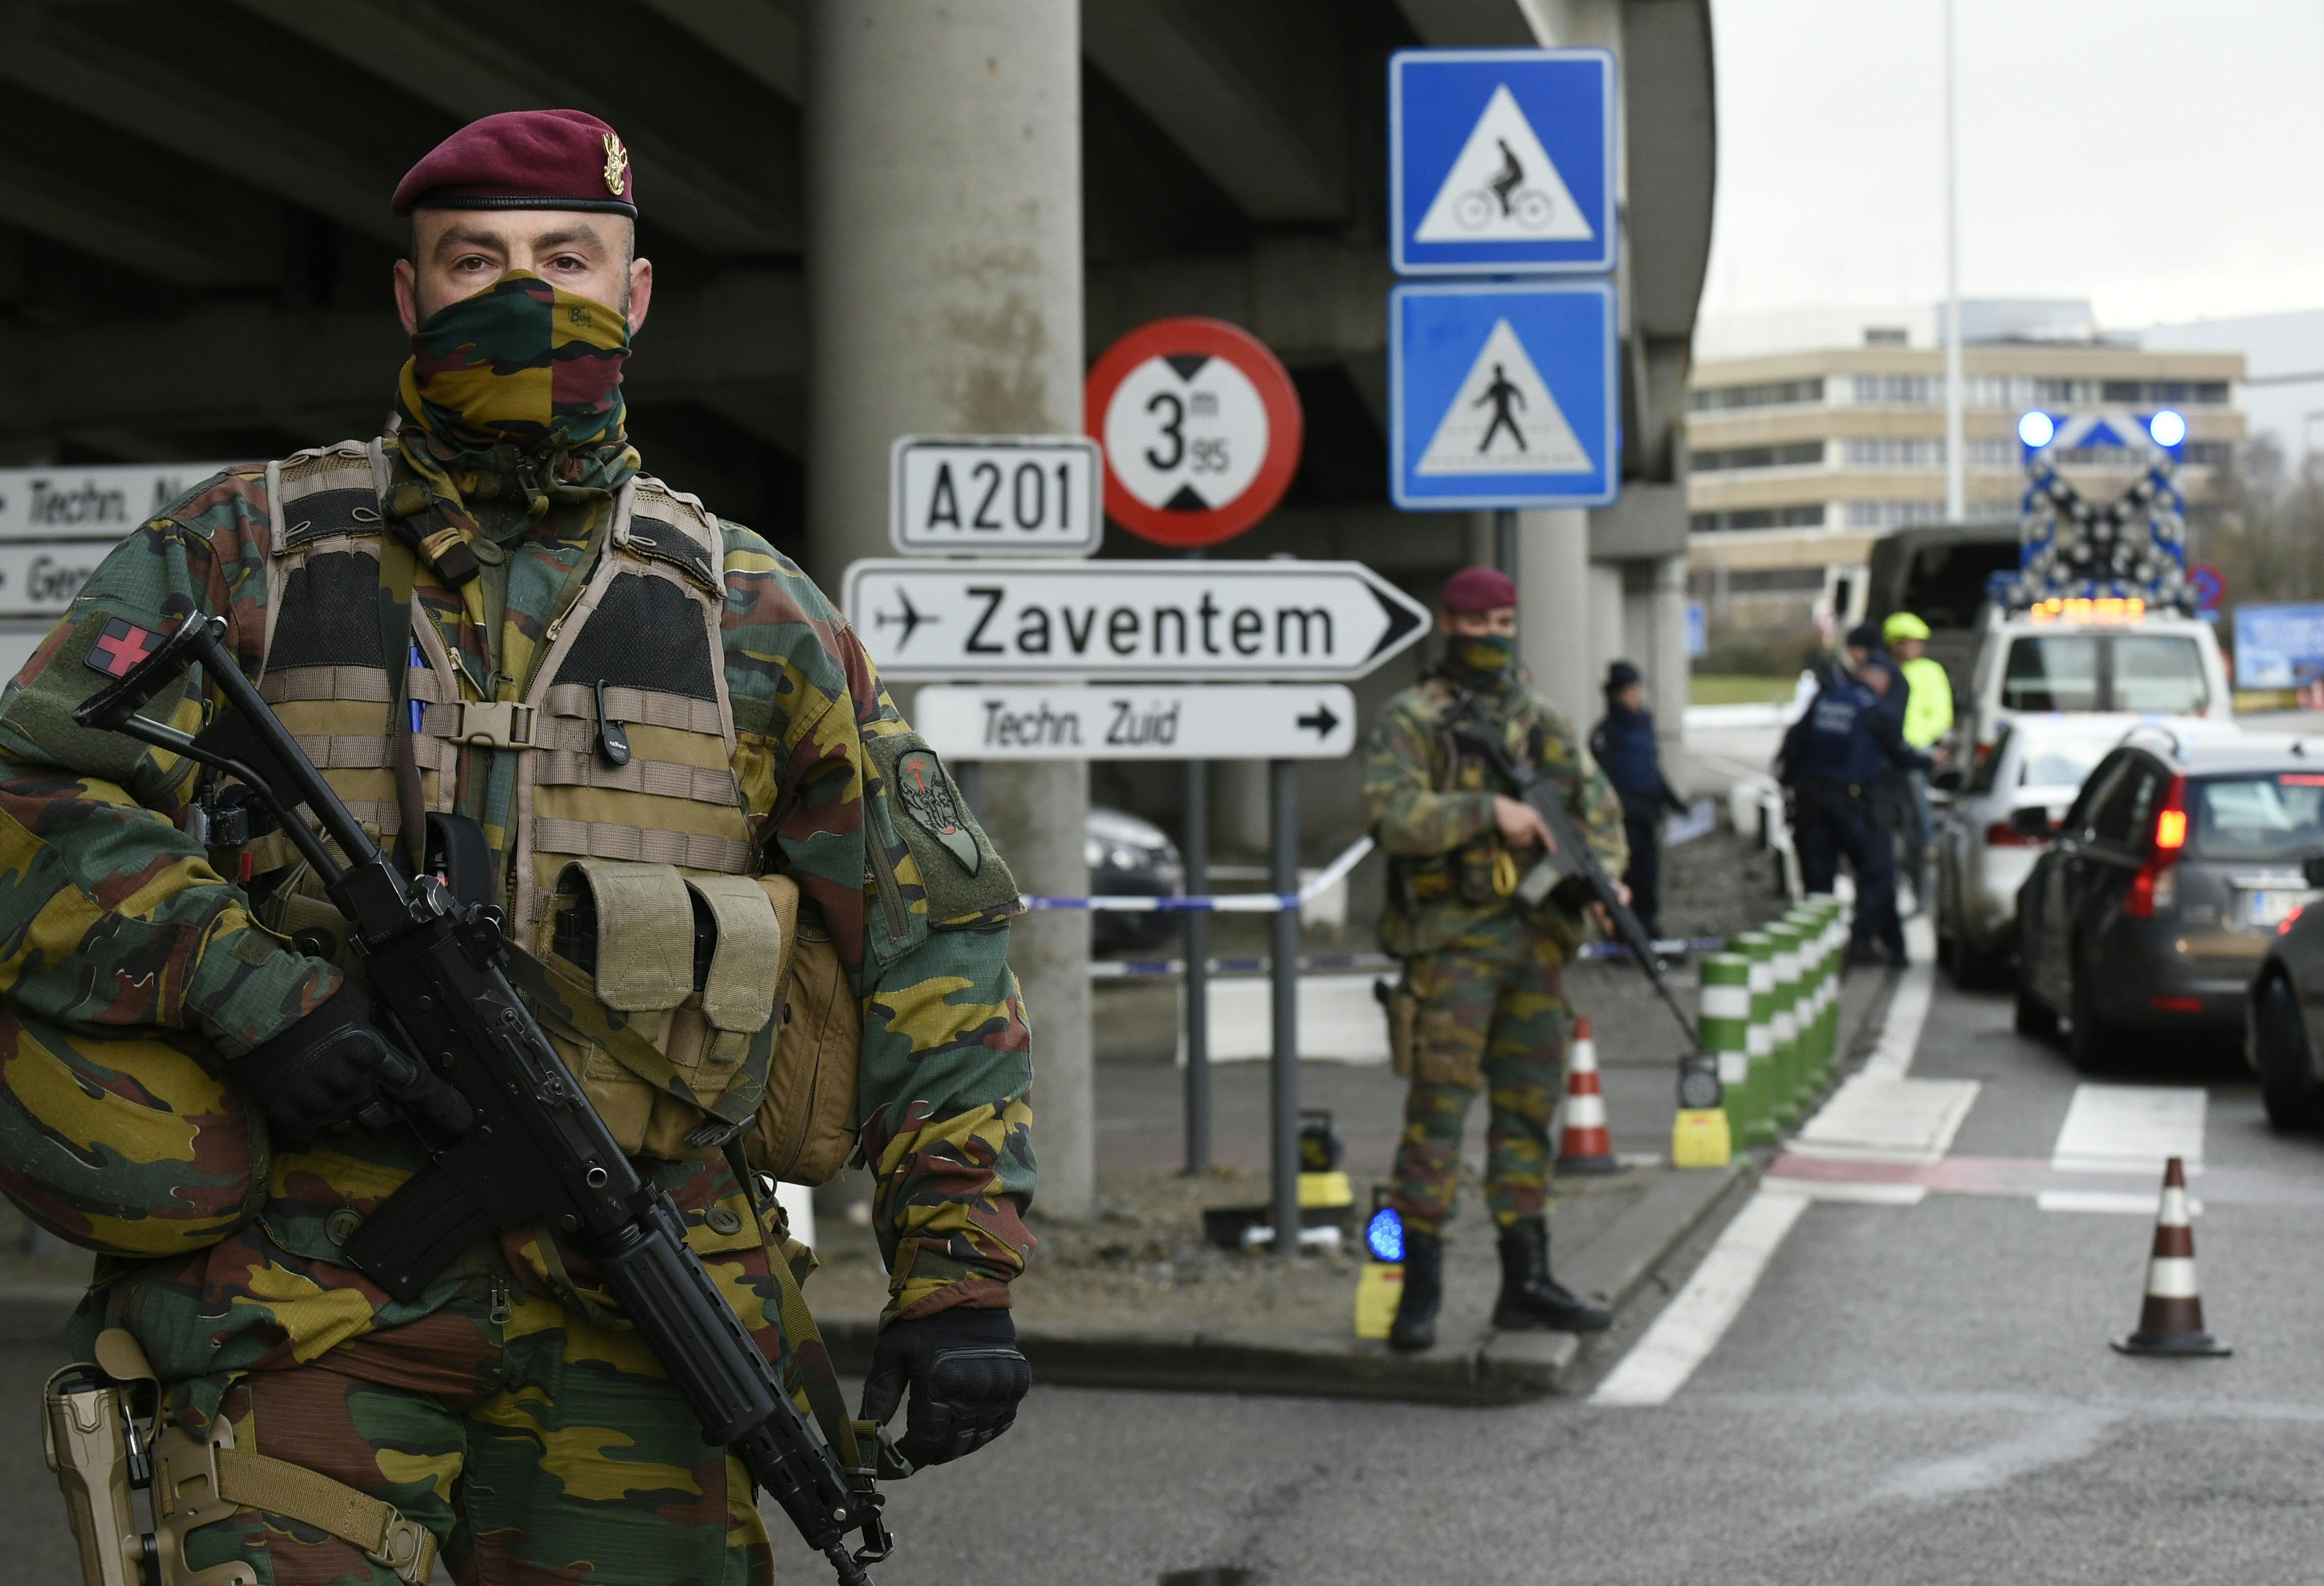 Brussels security